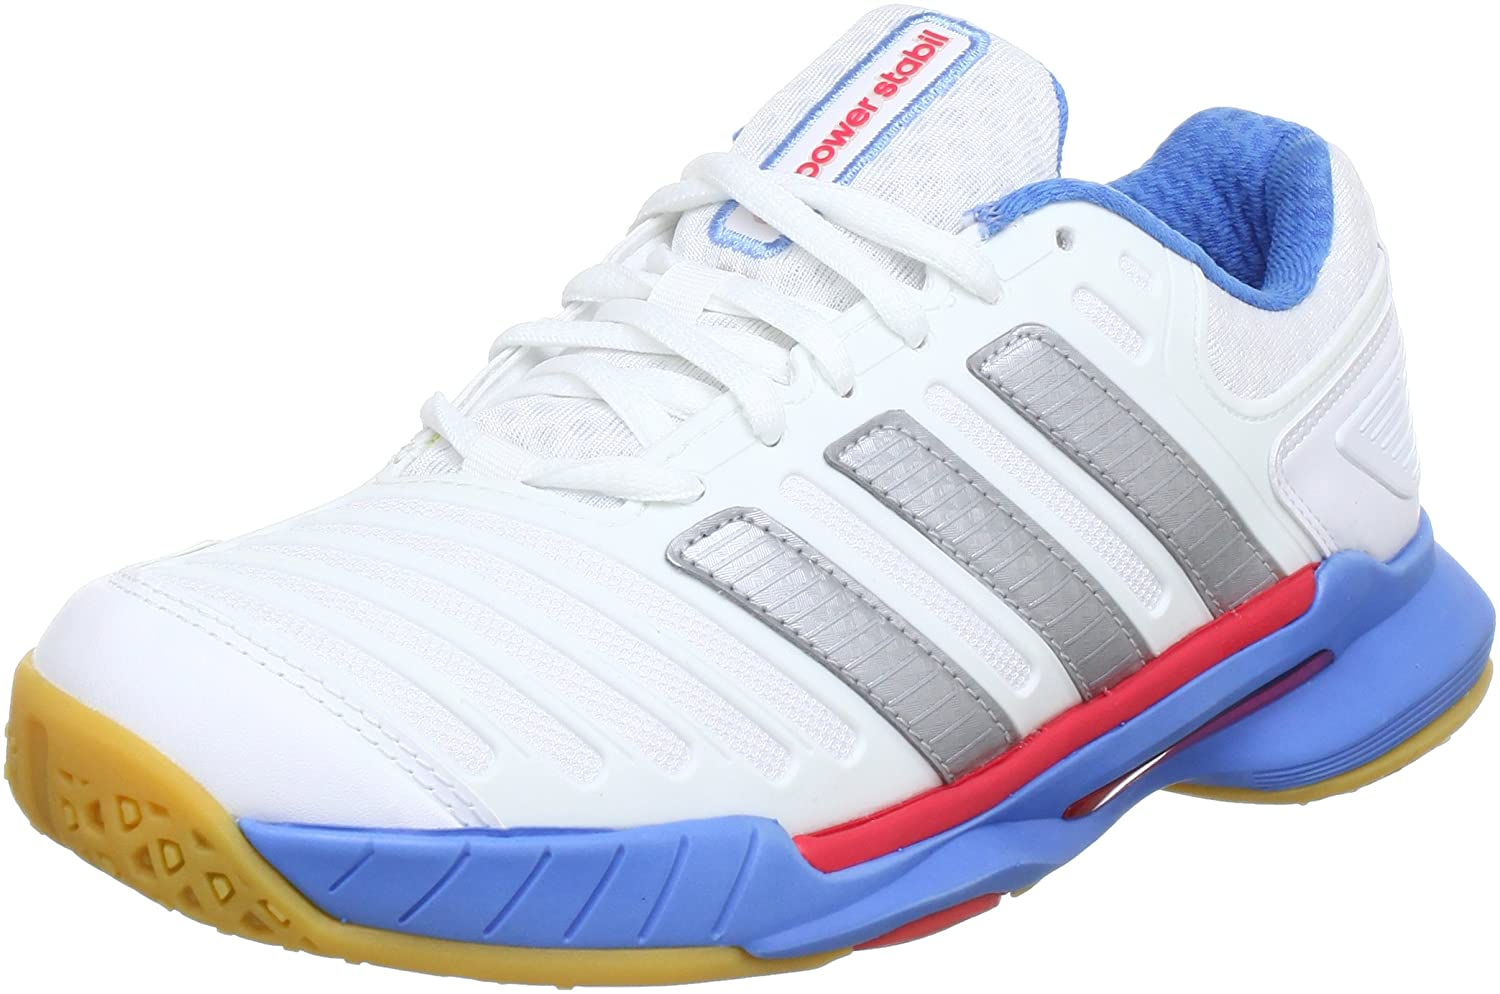 wholesale dealer 32e1e 3fb64 adidas adipower Stabil 10.0 W G64975, Damen Handballschuhe, Weiß (Running  White Ftw  Metallic Silver  Joy Blue S13), EU 48 (UK 12.5) Amazon.de  Schuhe  ...